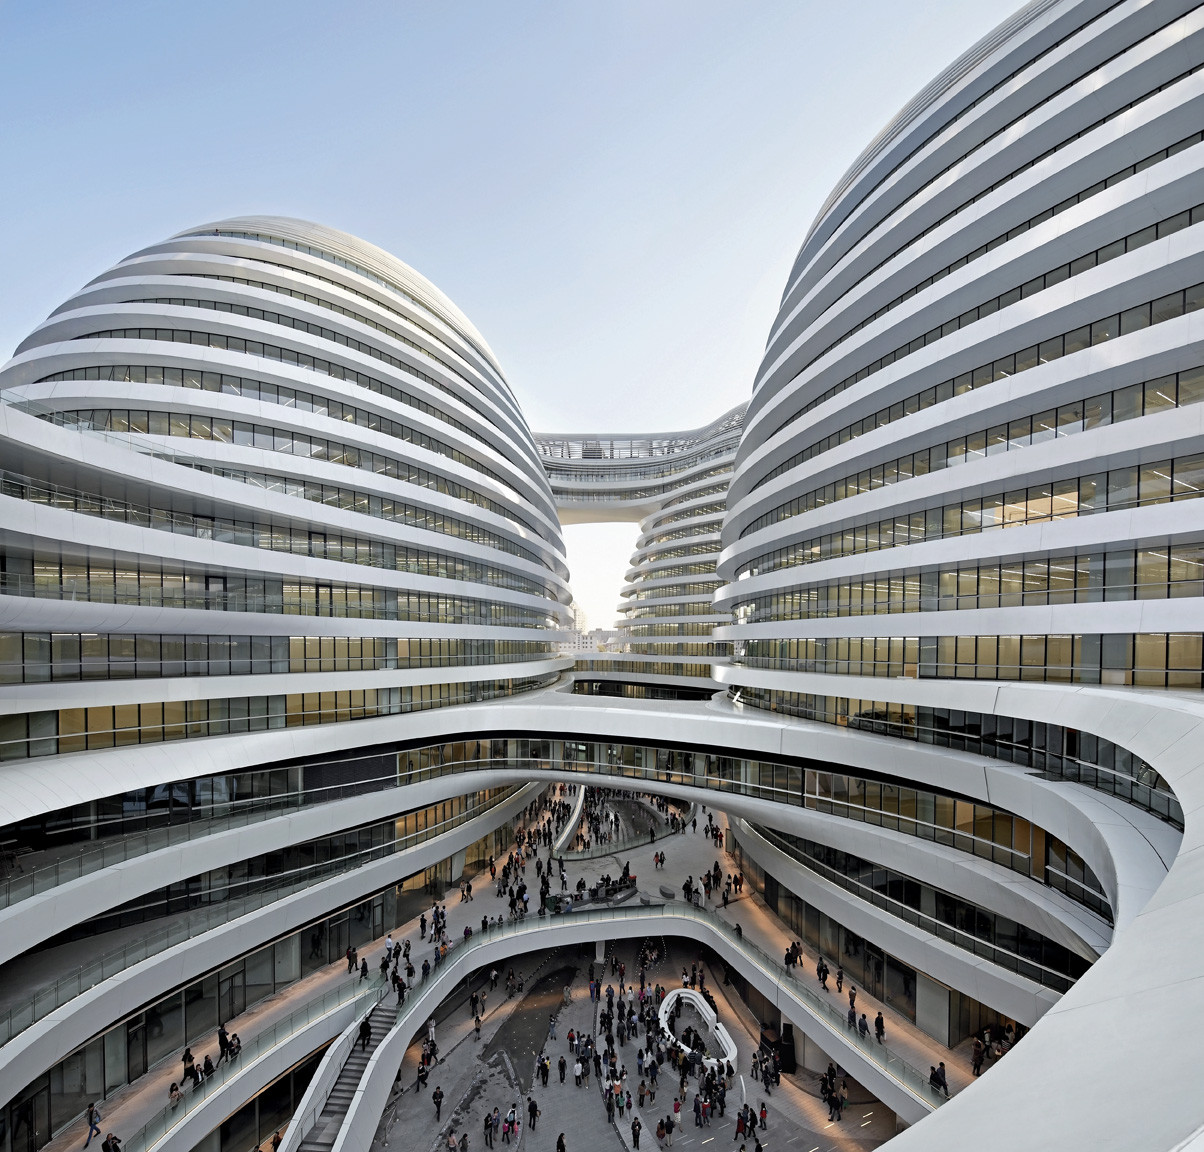 Galaxy Soho / Zaha Hadid Architects by Hufton + Crow, © Hufton + Crow